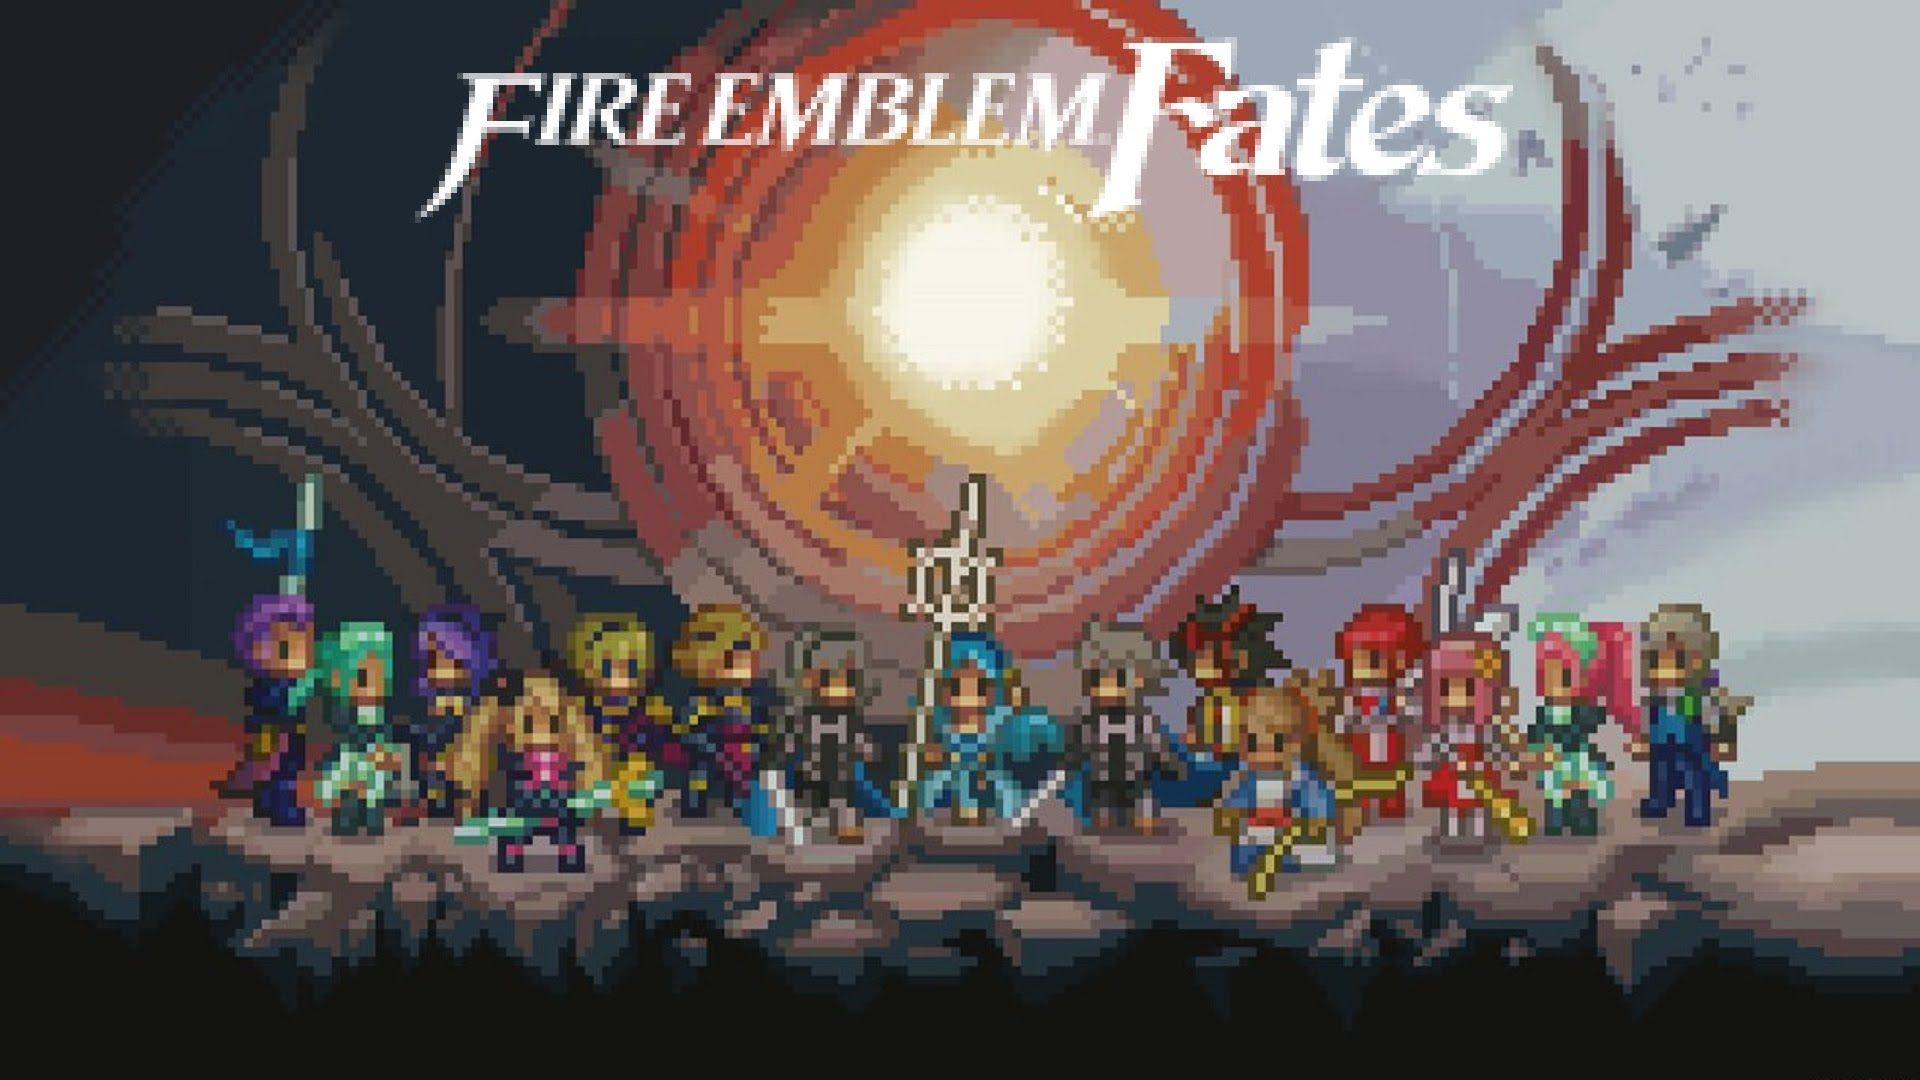 Fire Emblem Fates Image By Just A Fan On Fire Emblem Fire Emblem